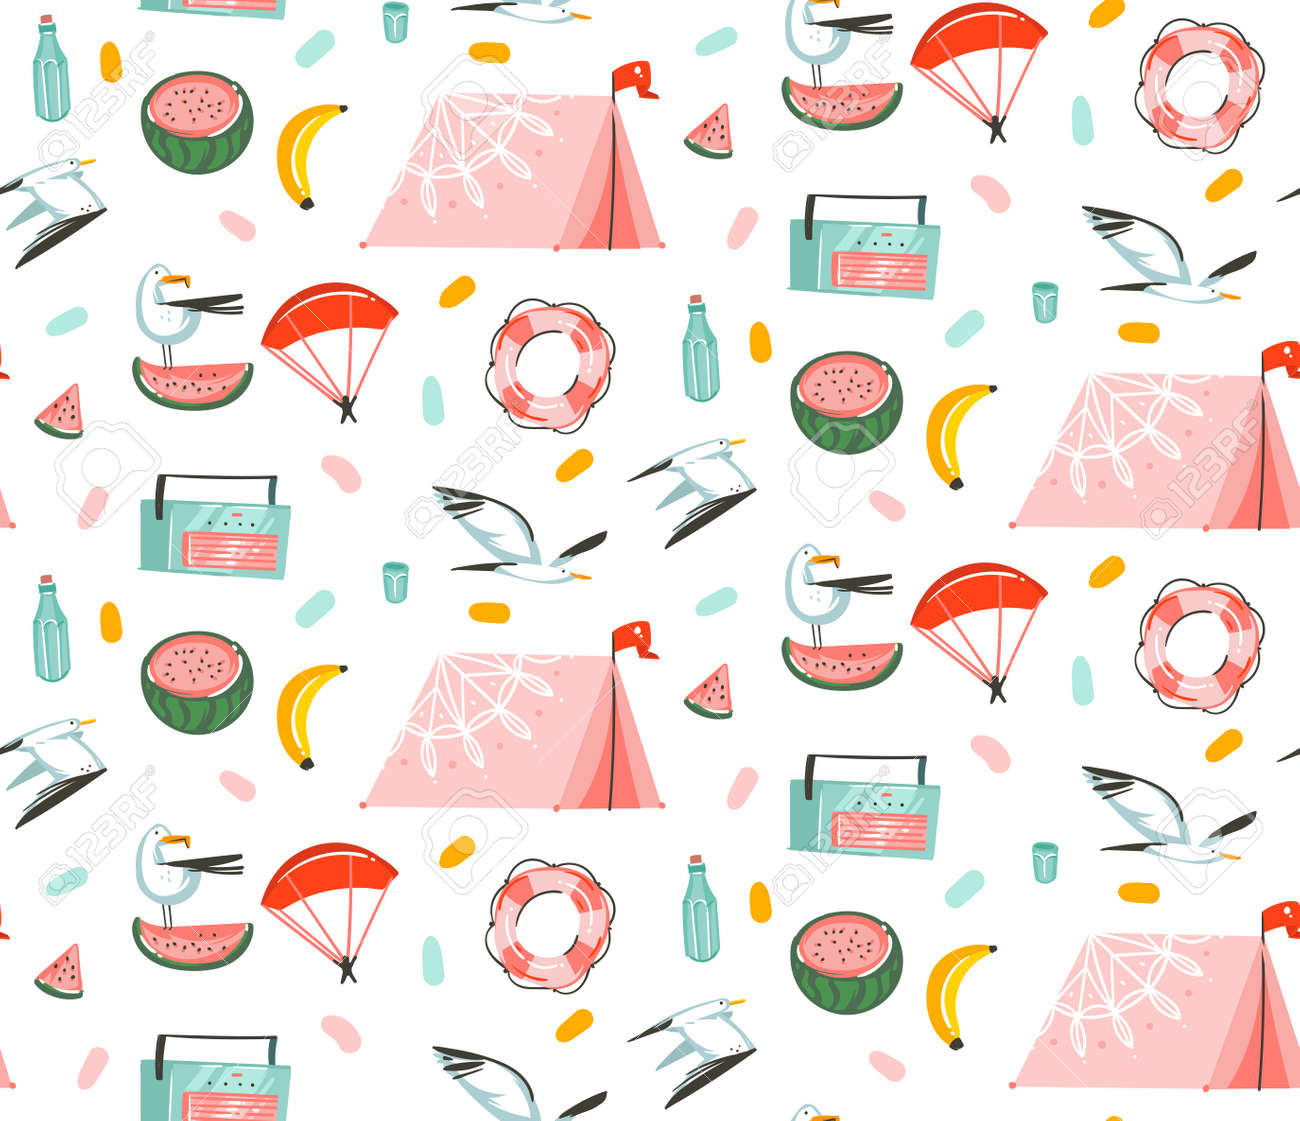 Hand drawn vector abstract cartoon summer time graphic illustrations artistic seamless pattern with beach gull birds,camping tent,watermelon and banana fruits isolated on white background. - 116304045